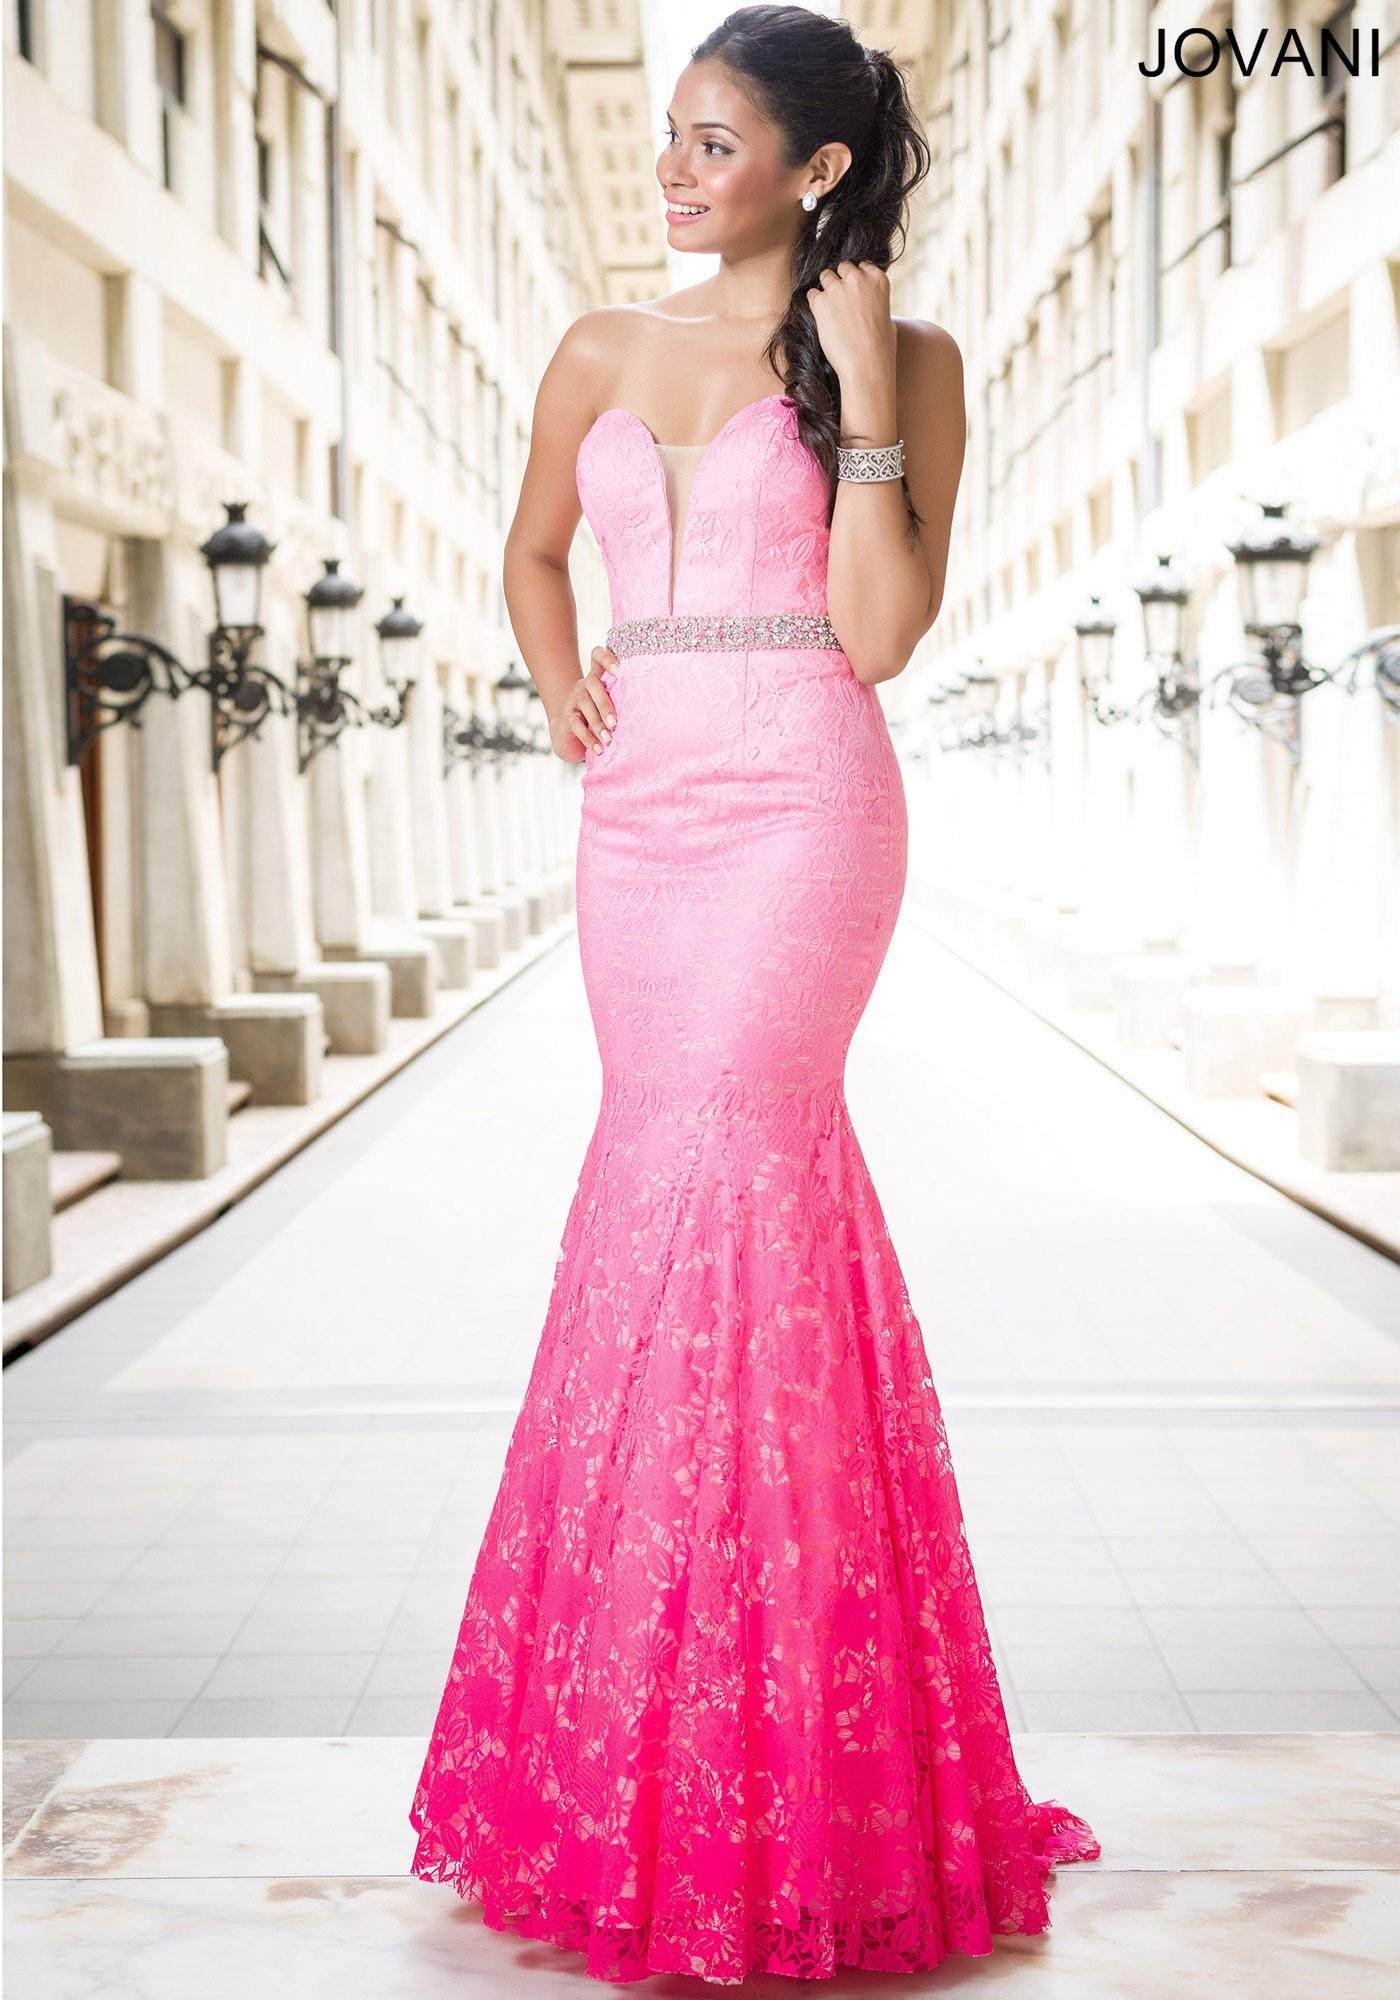 Jovani Prom Dresses Mermaid Style Dress